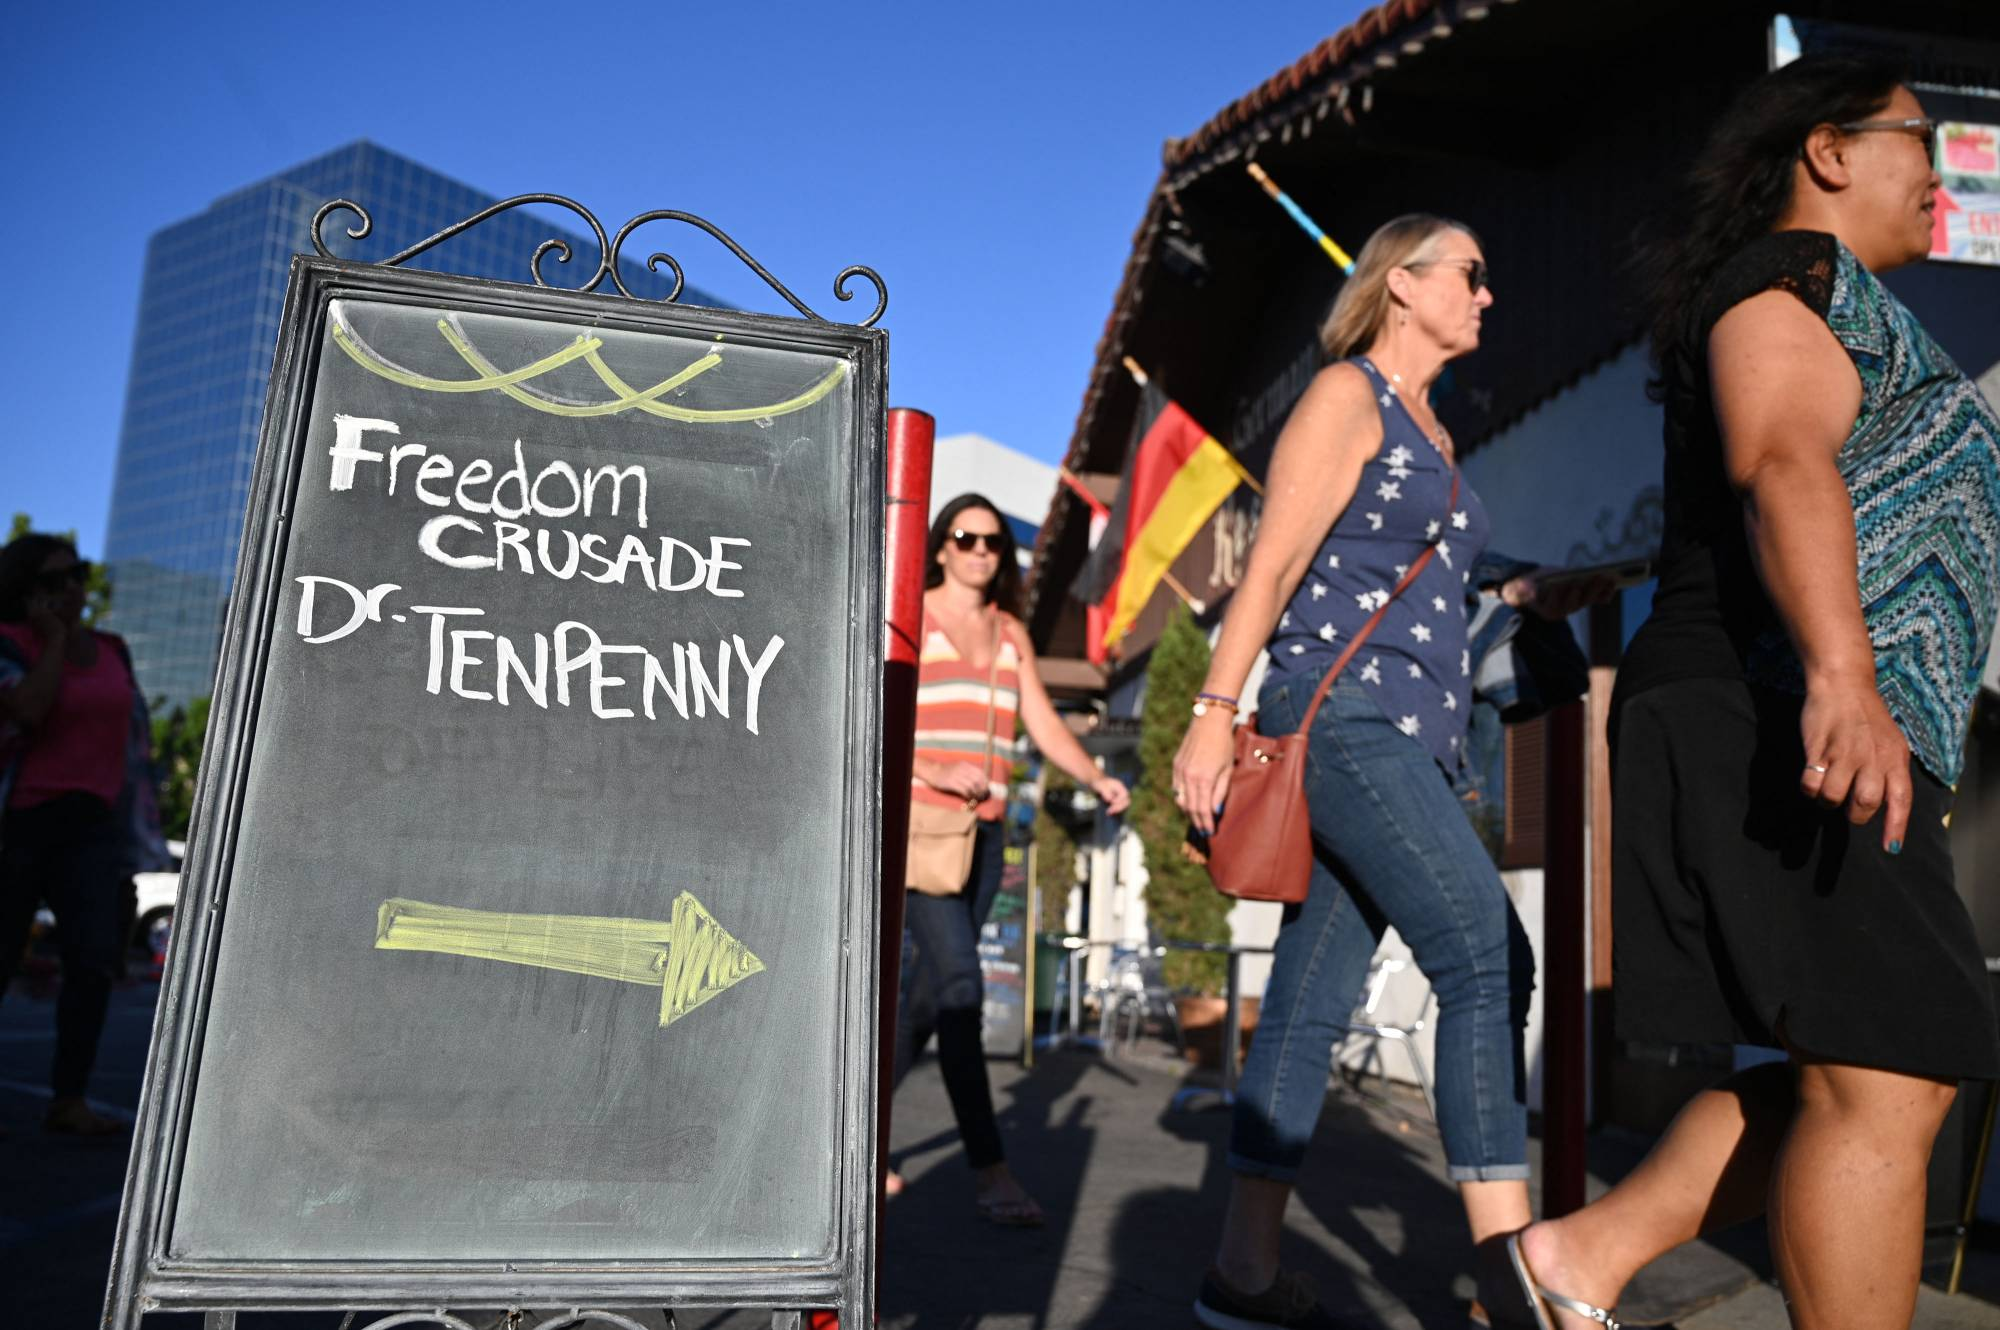 People arrive for an event in Huntington Beach, California, on Aug. 5, where Sherri Tenpenny was scheduled to speak.    AFP-JIJI